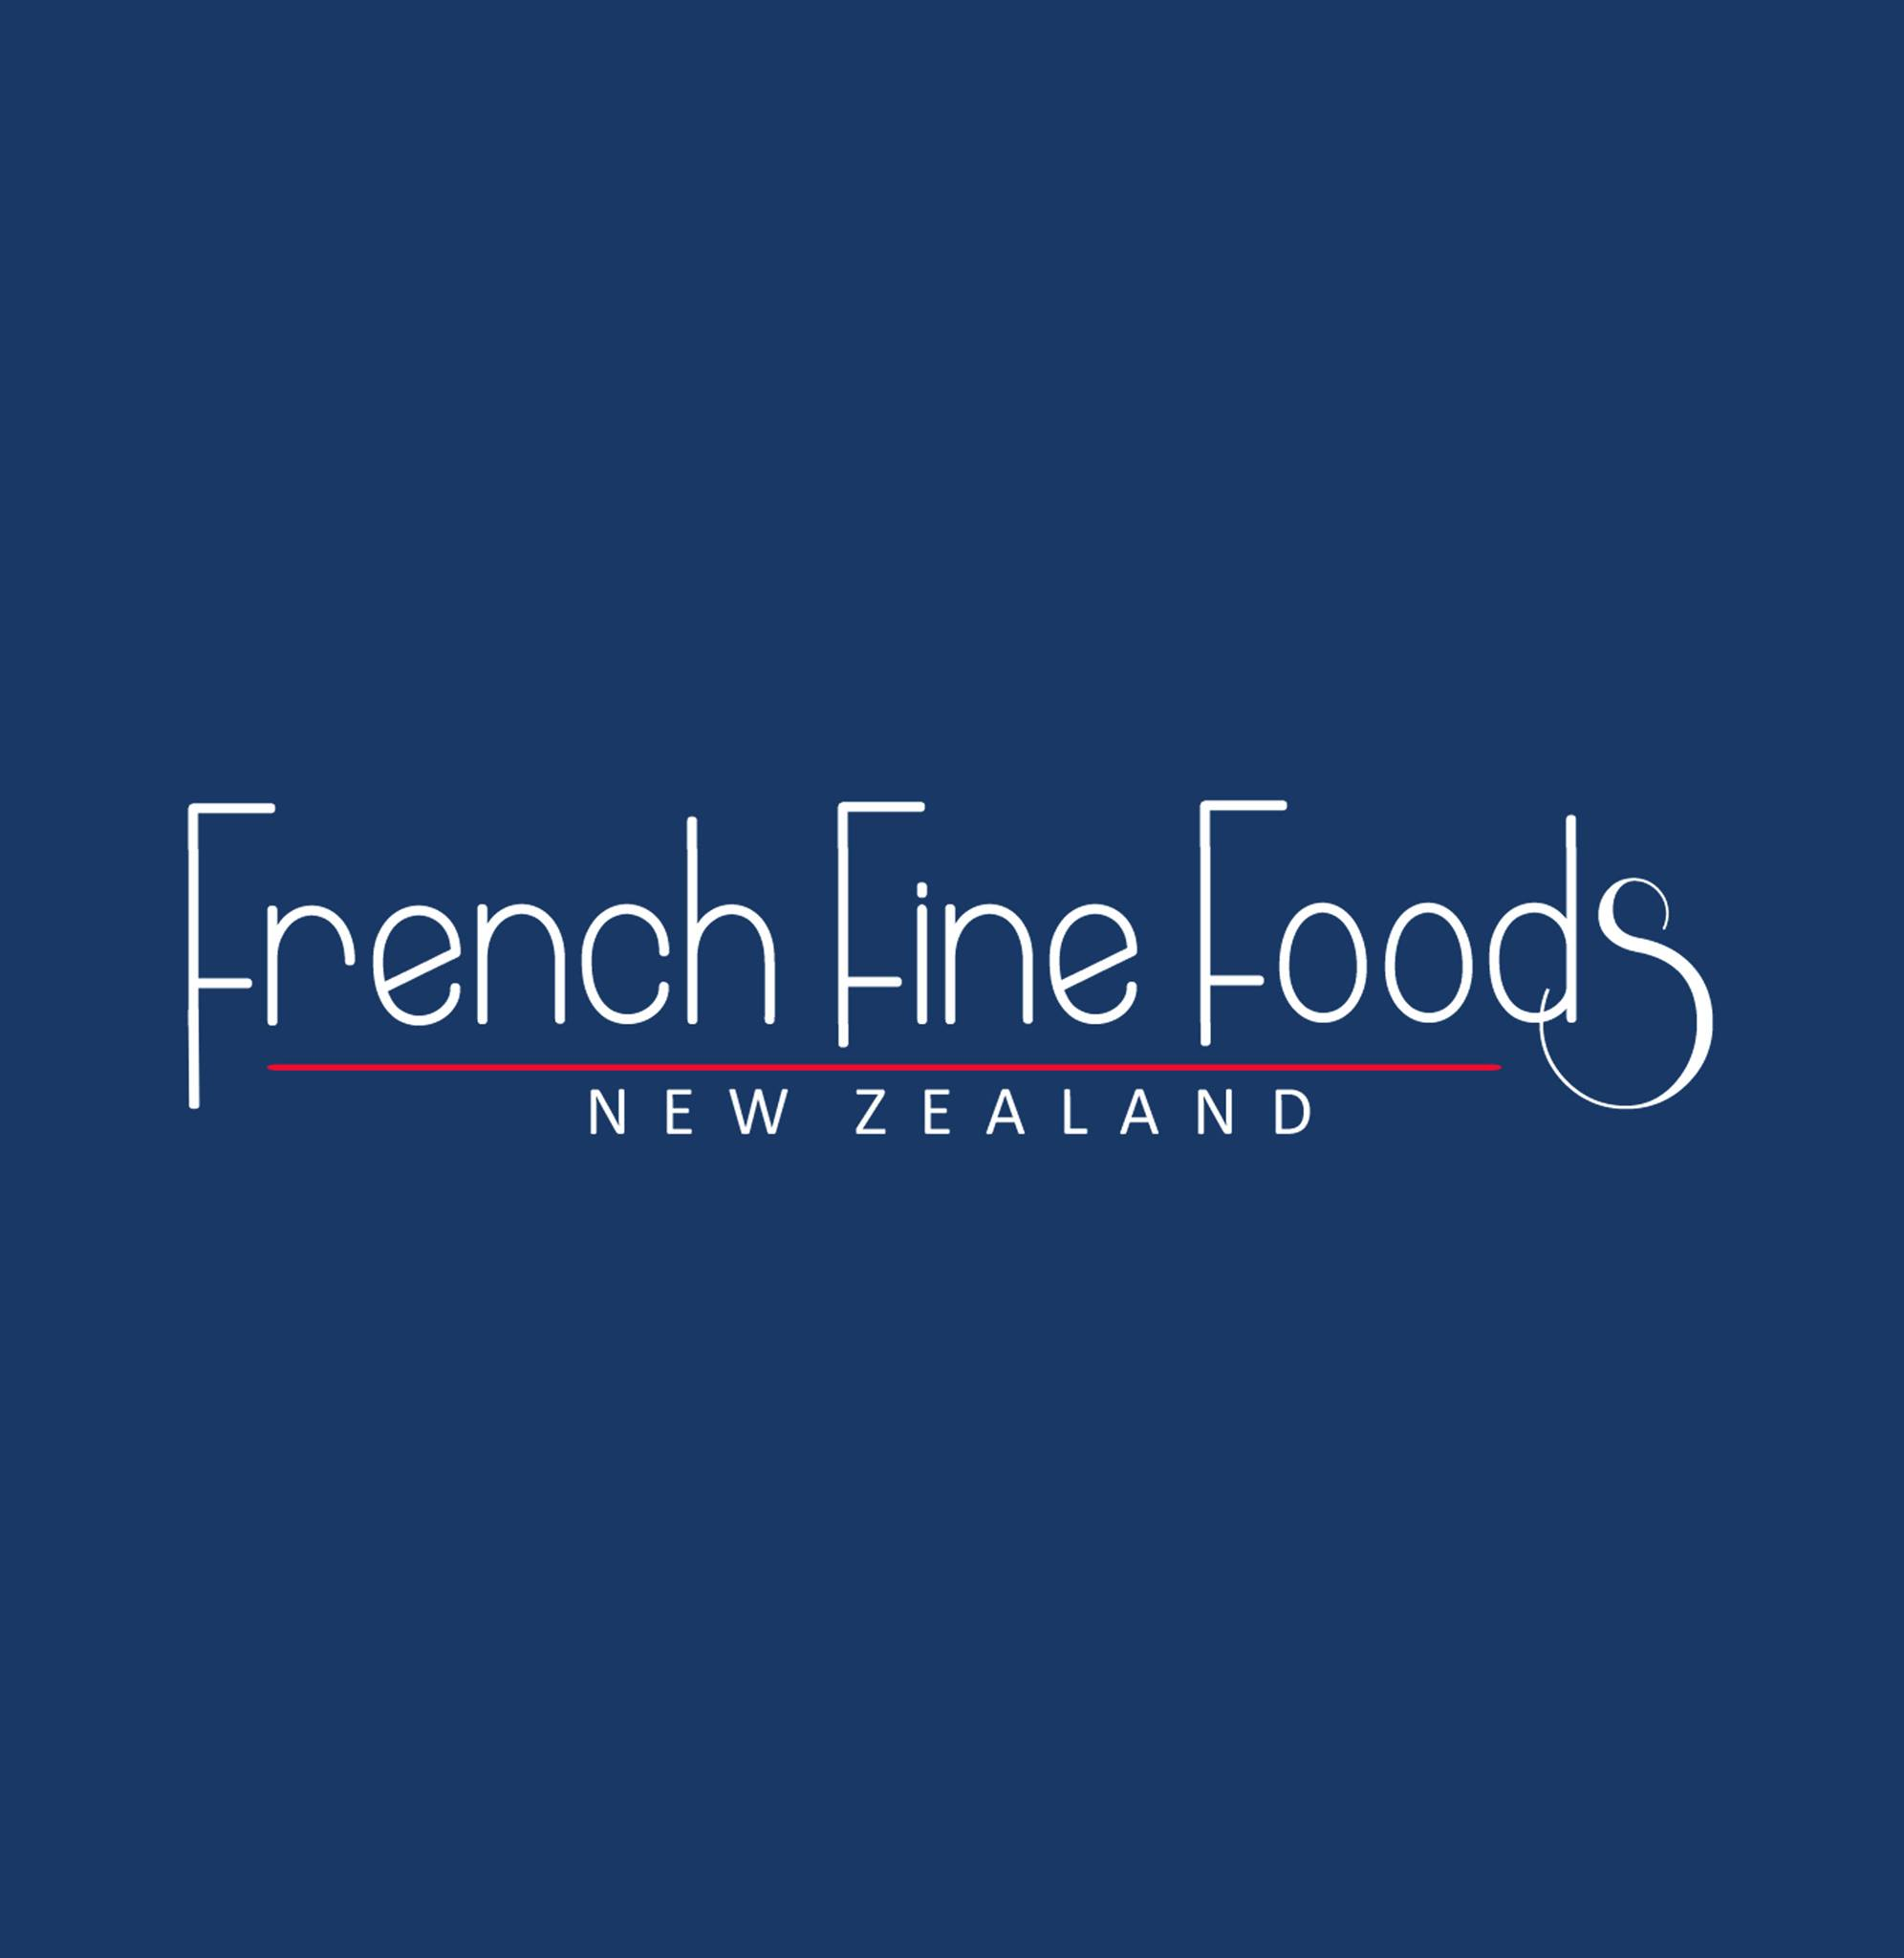 French Fine Foods